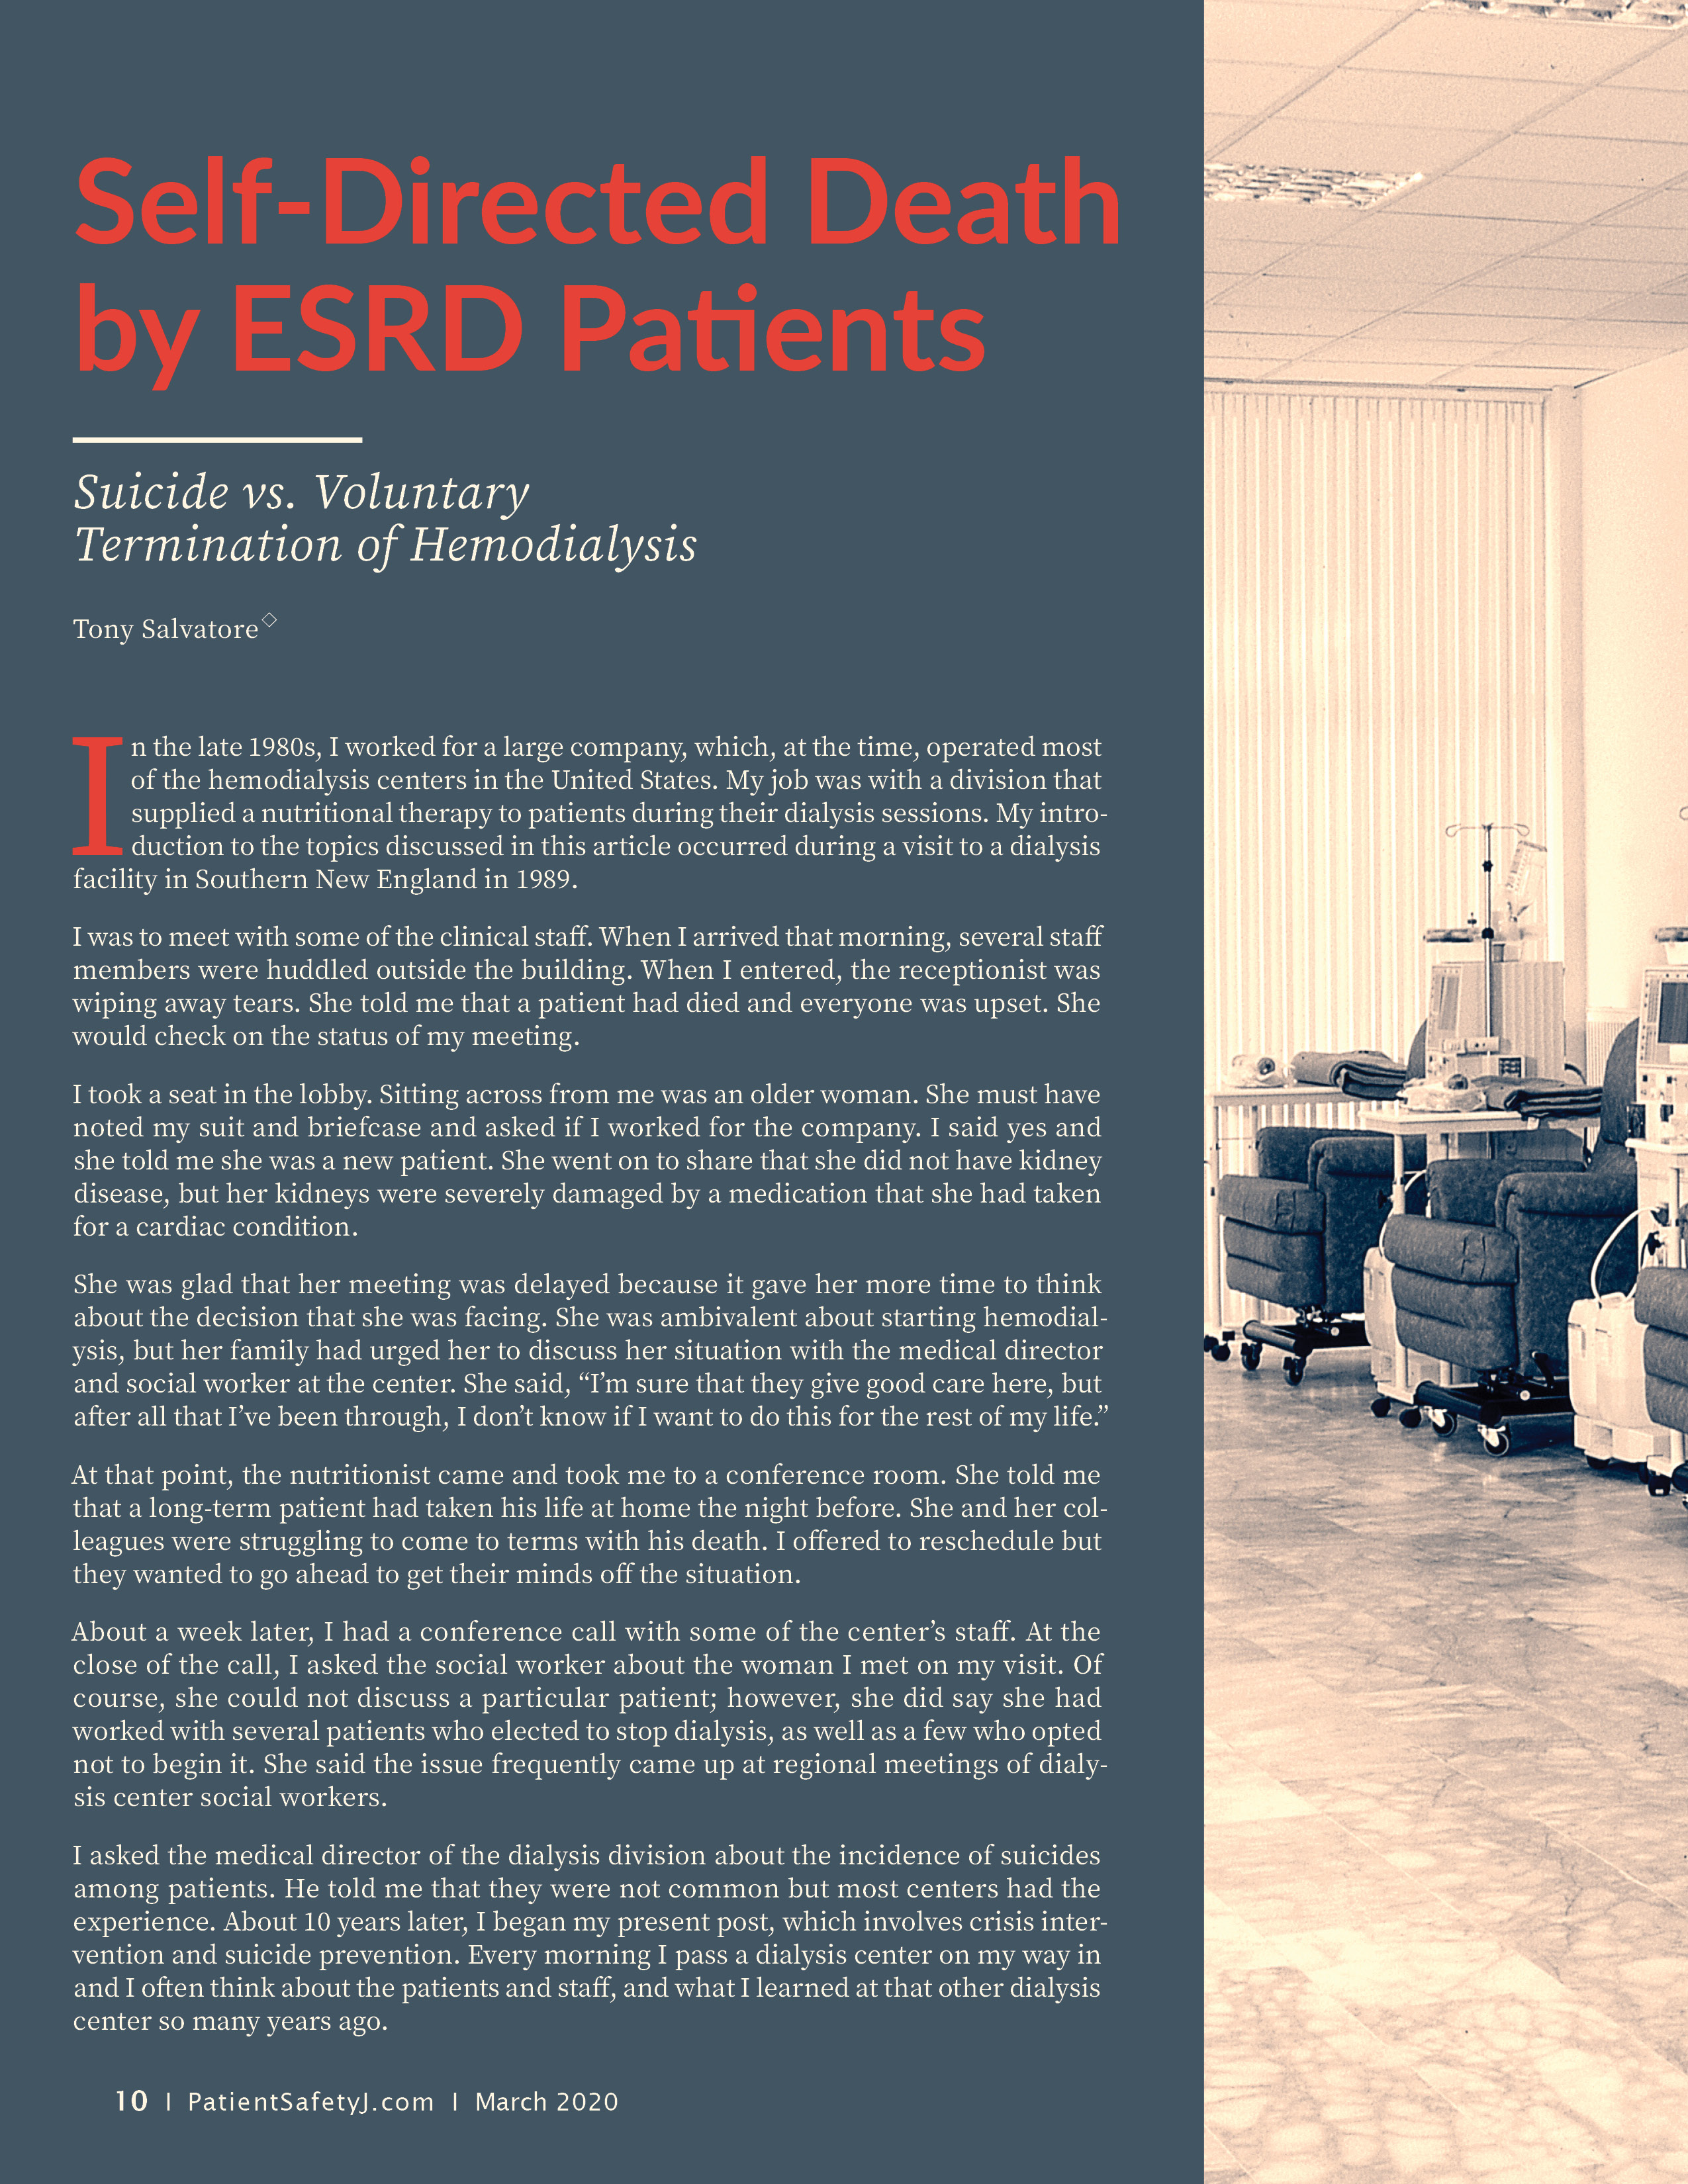 ESRD Patients, hemodialysis chairs lined up.